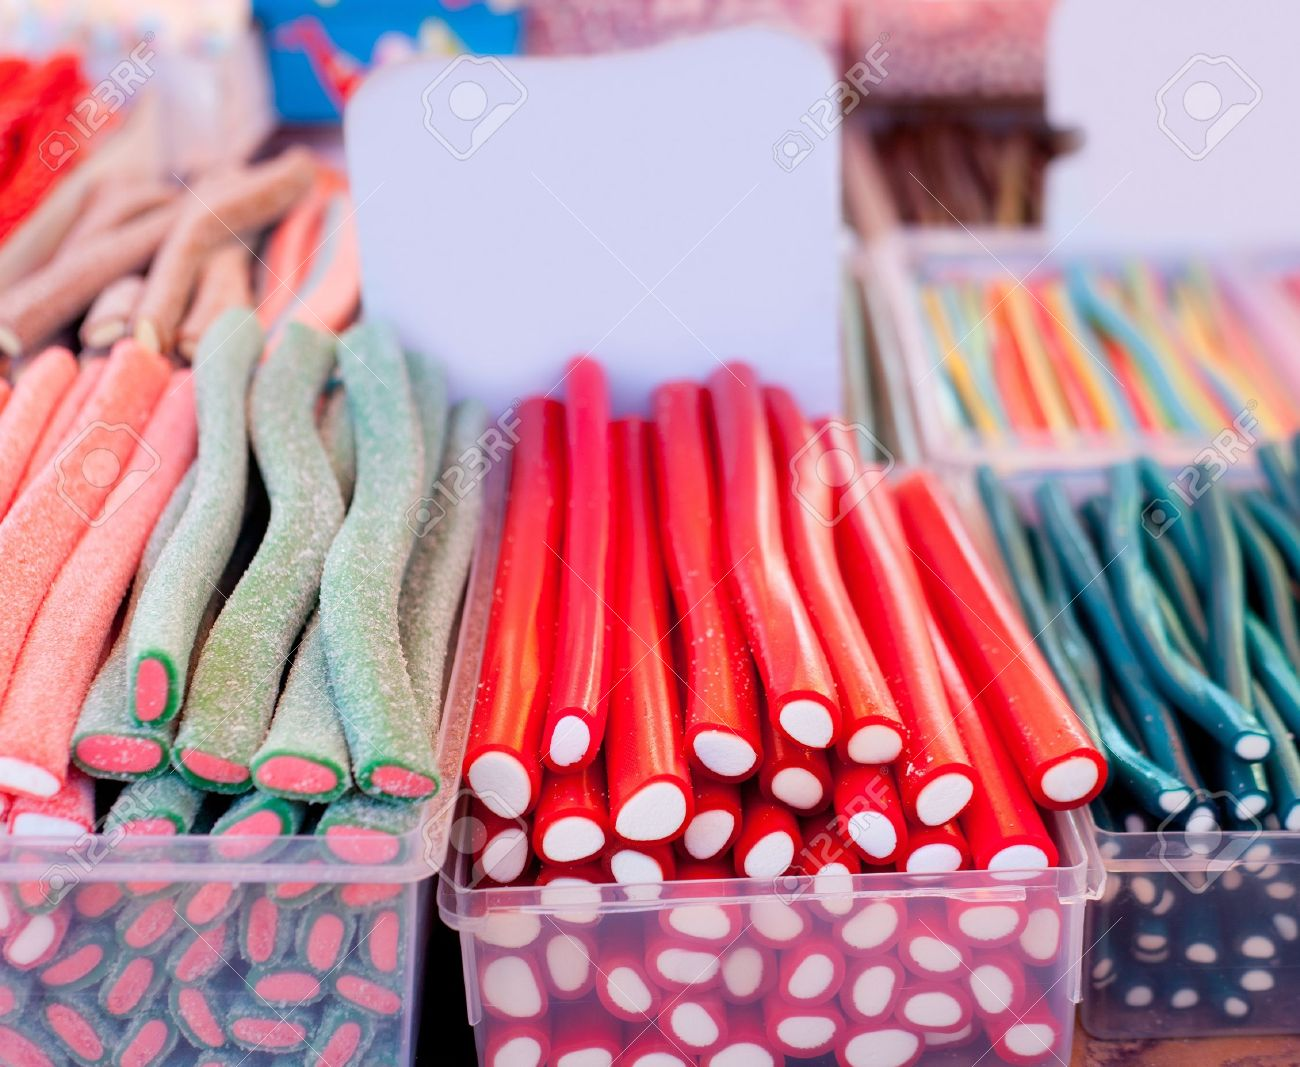 Candy jelly sweets colorful stripes selective focus in center foreground Stock Photo - 13601387